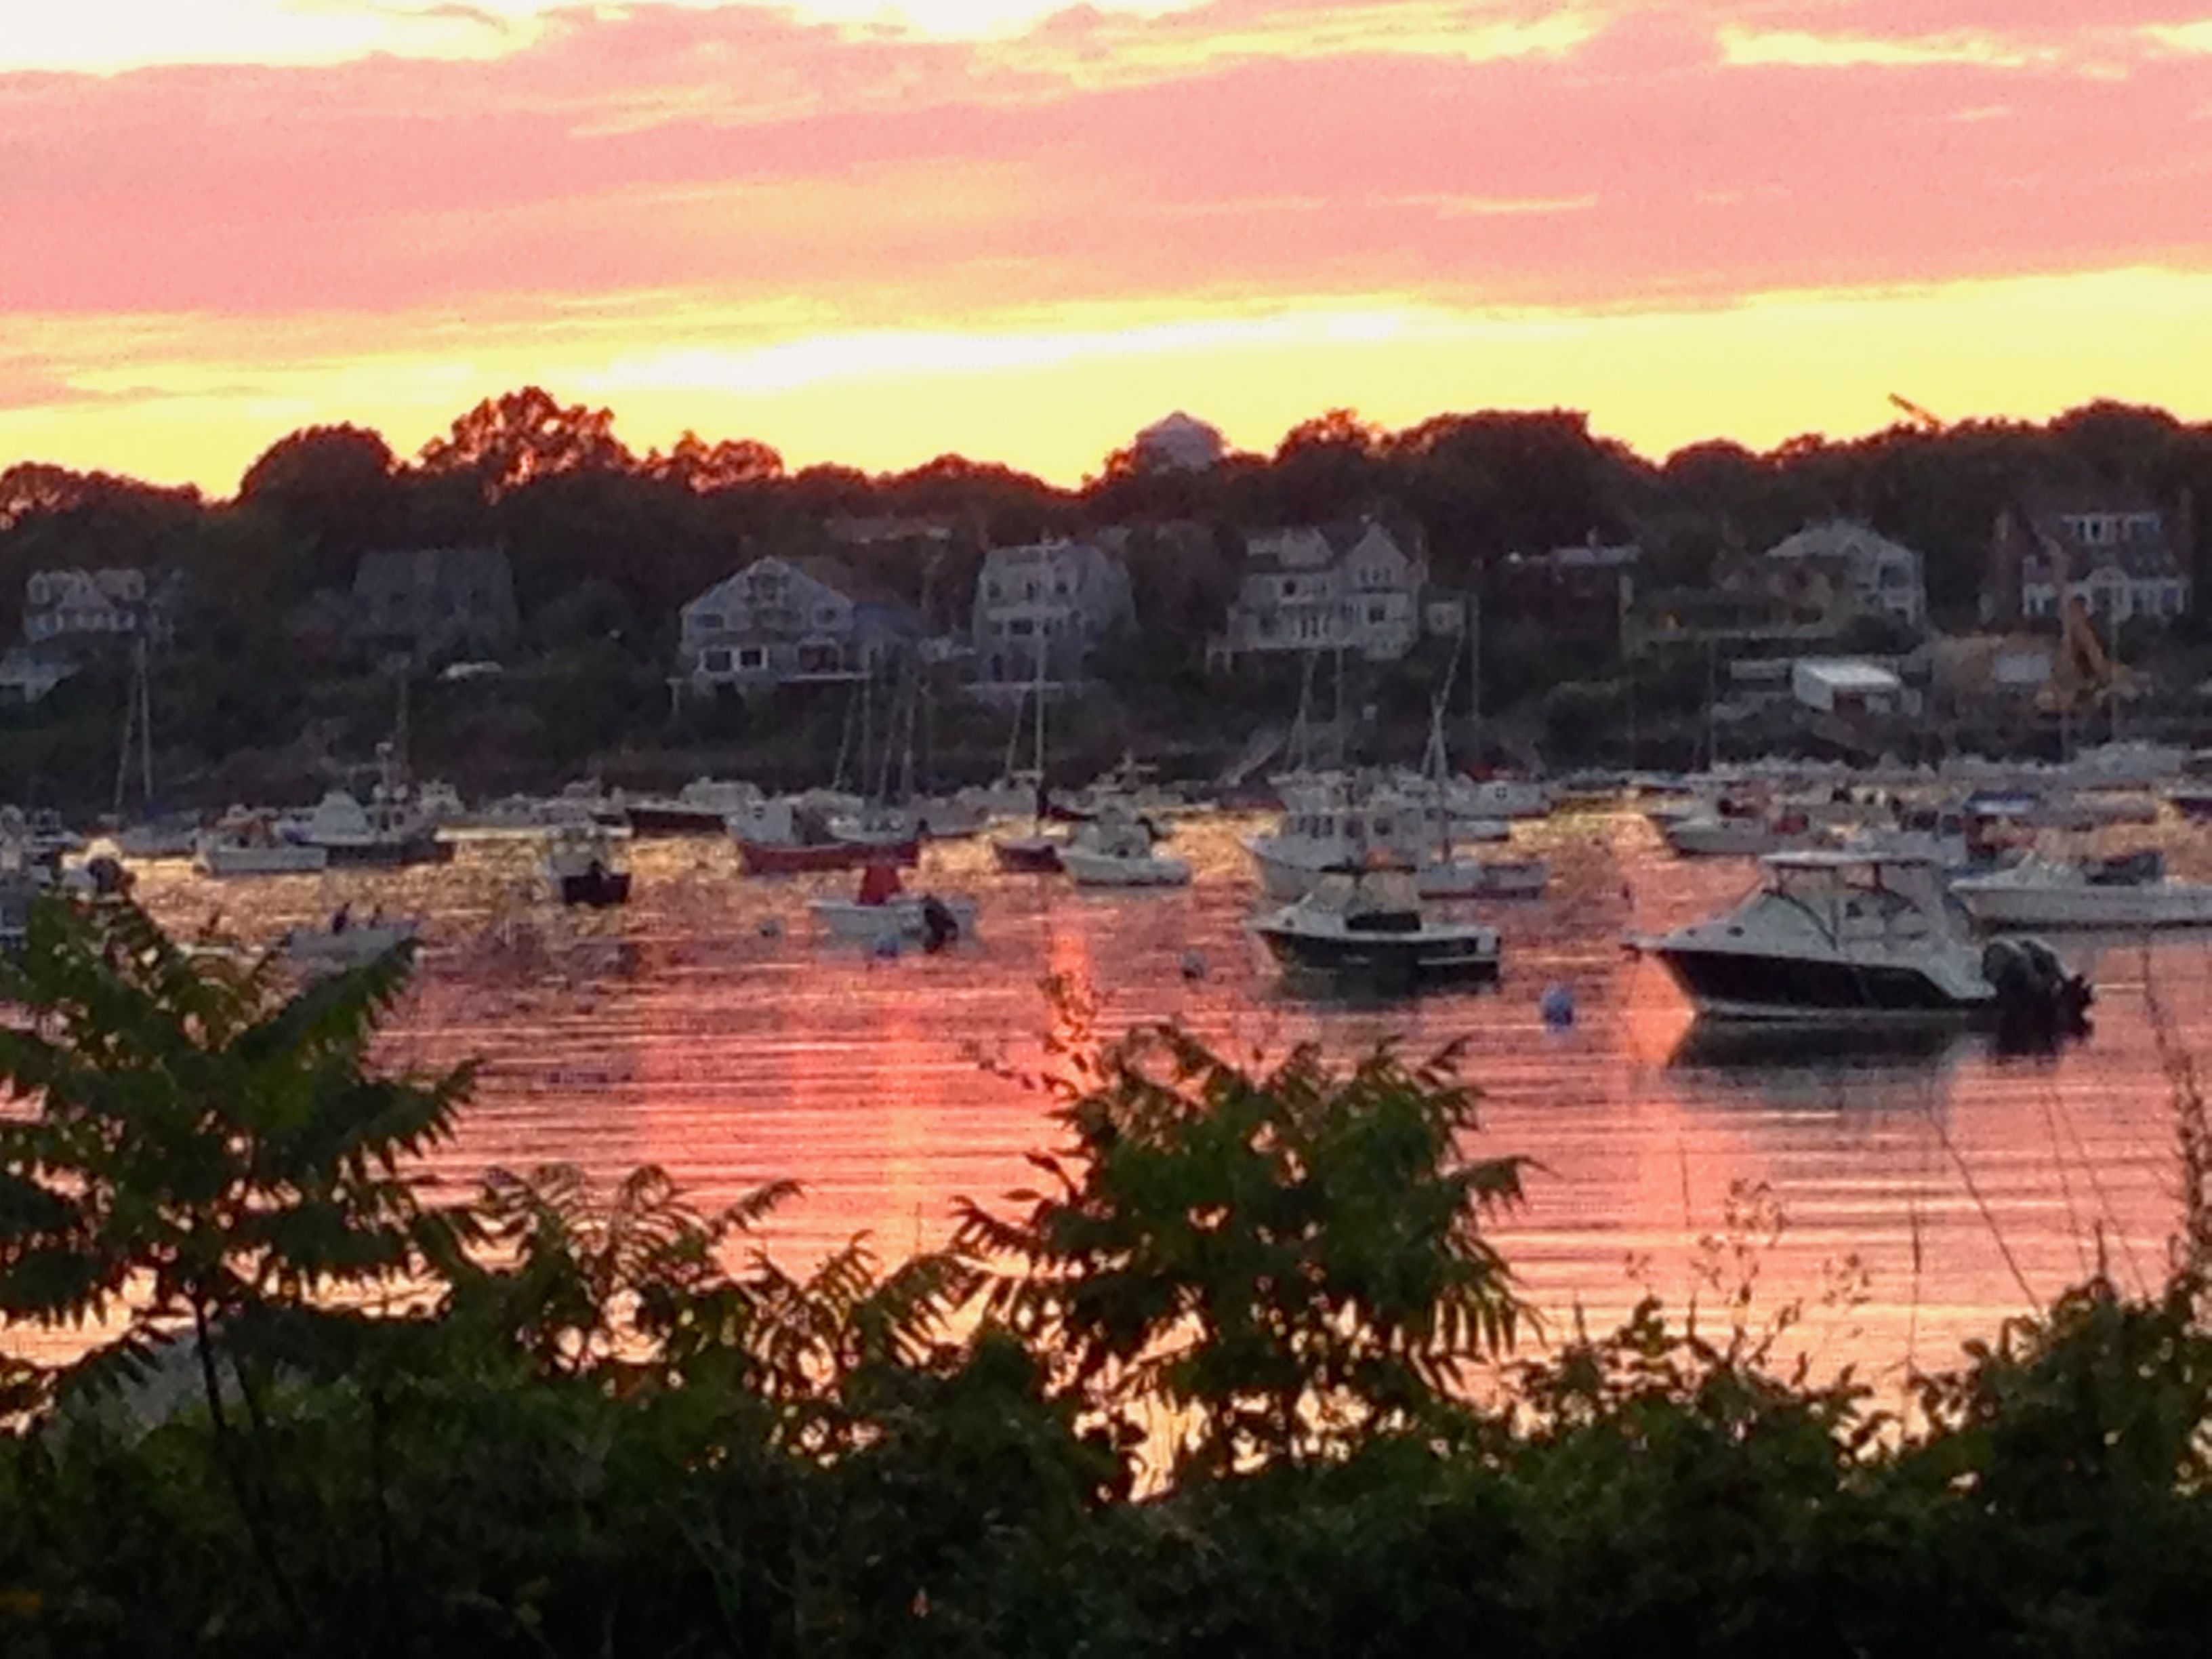 Marblehead Harbor, MA on fire at sunset! Marblehead, New